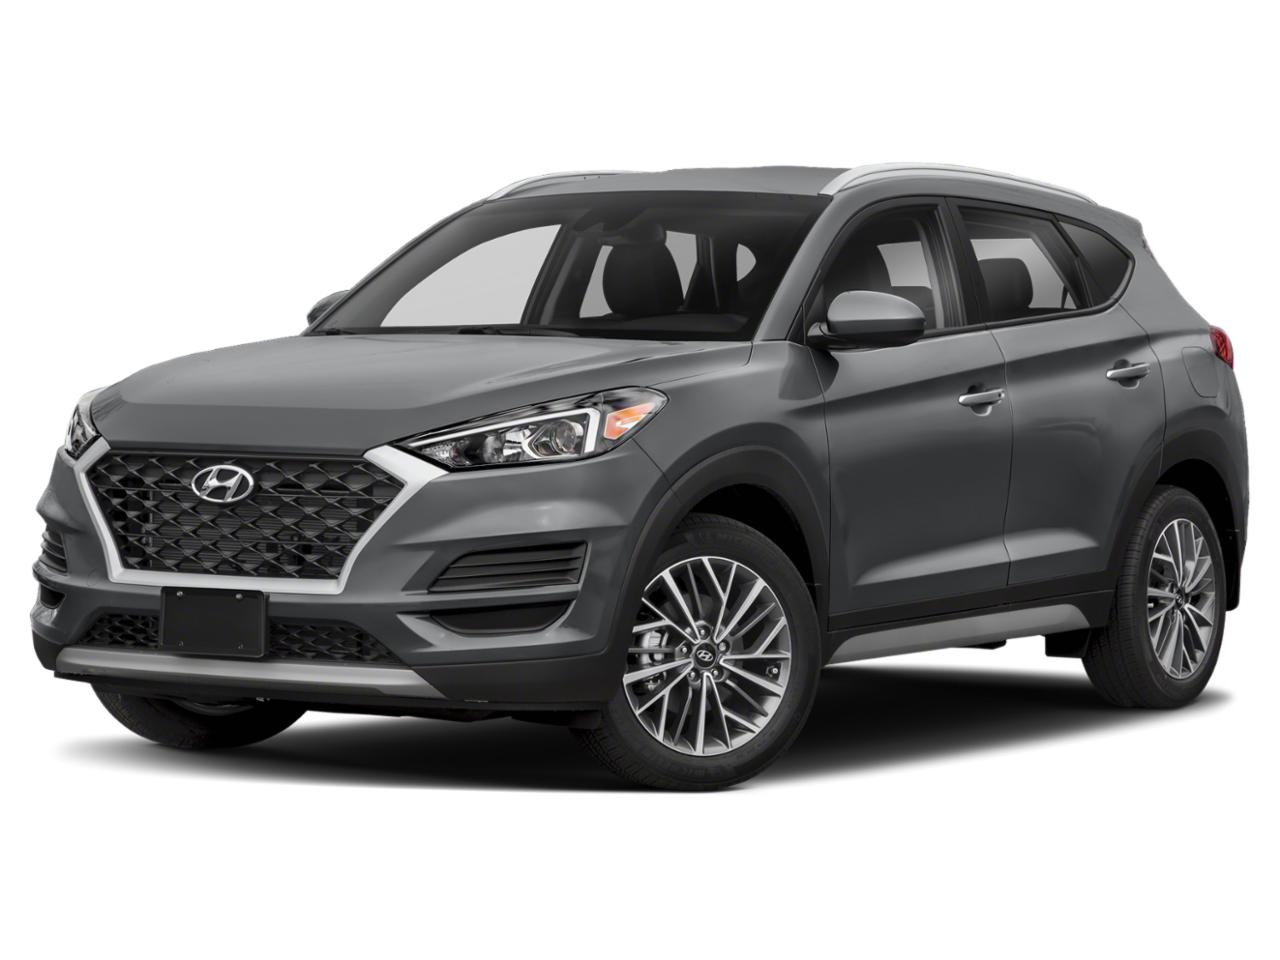 2020 Hyundai Tucson Vehicle Photo in Concord, NC 28027